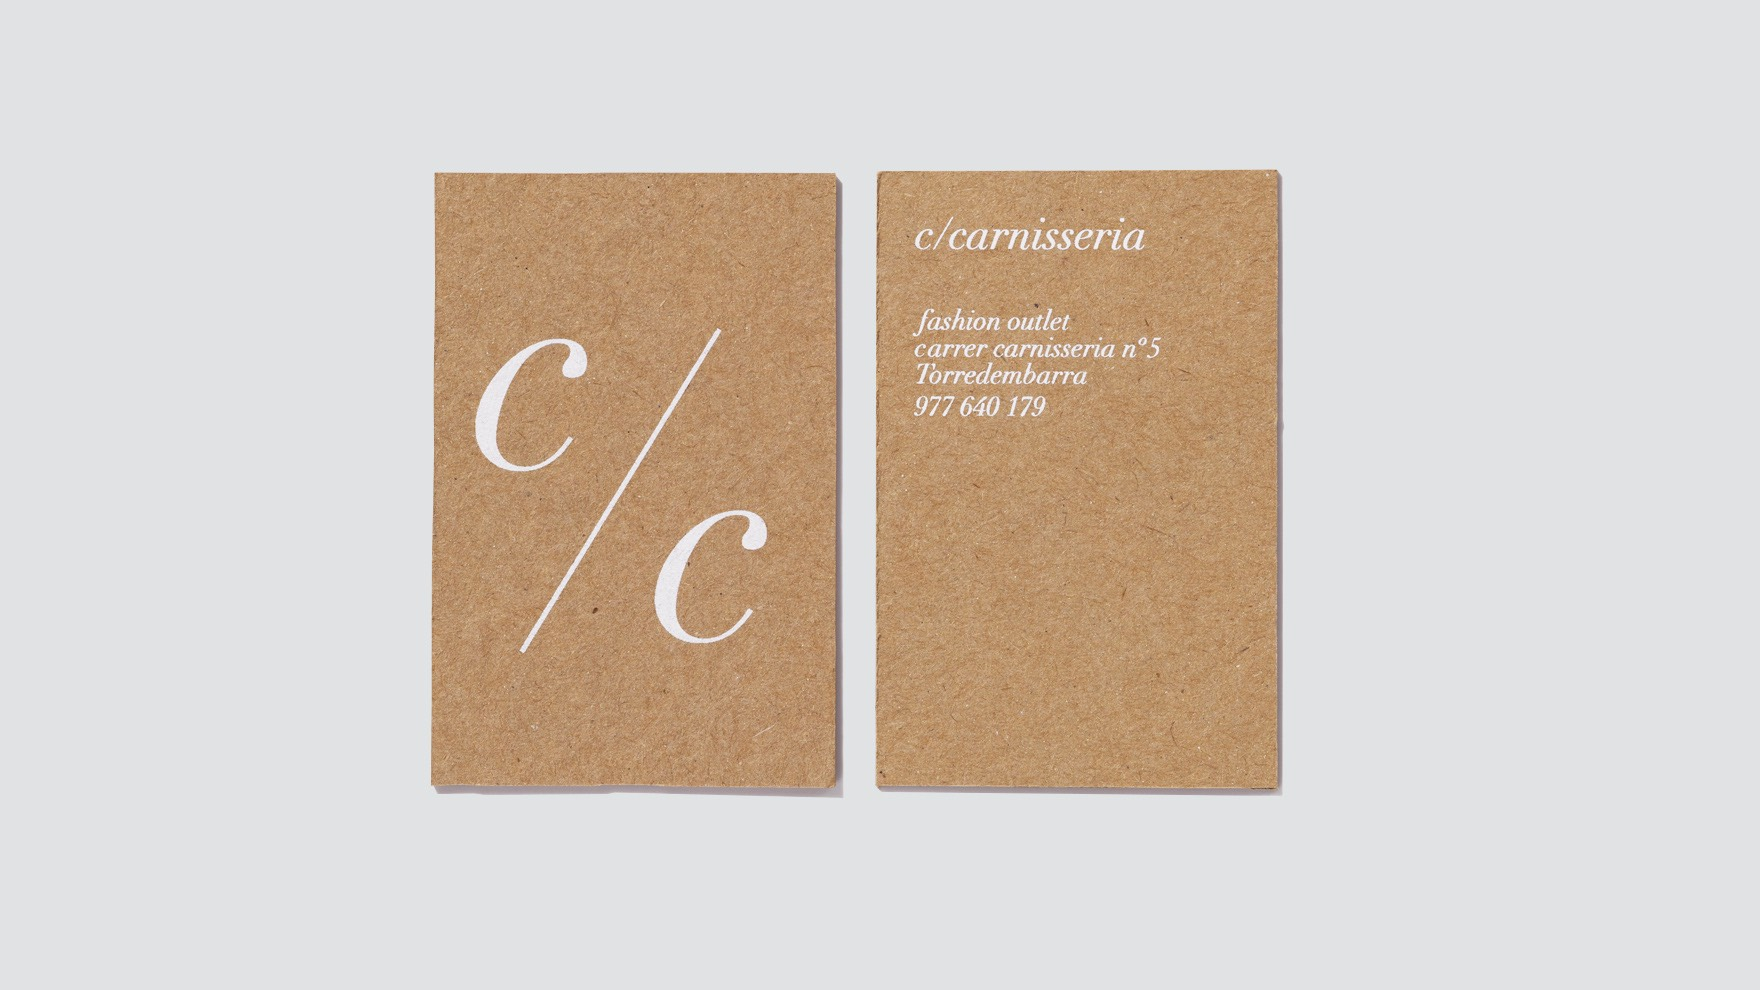 CARRER CARNISSERIA / CORPORATE IDENTITY / BRANDING